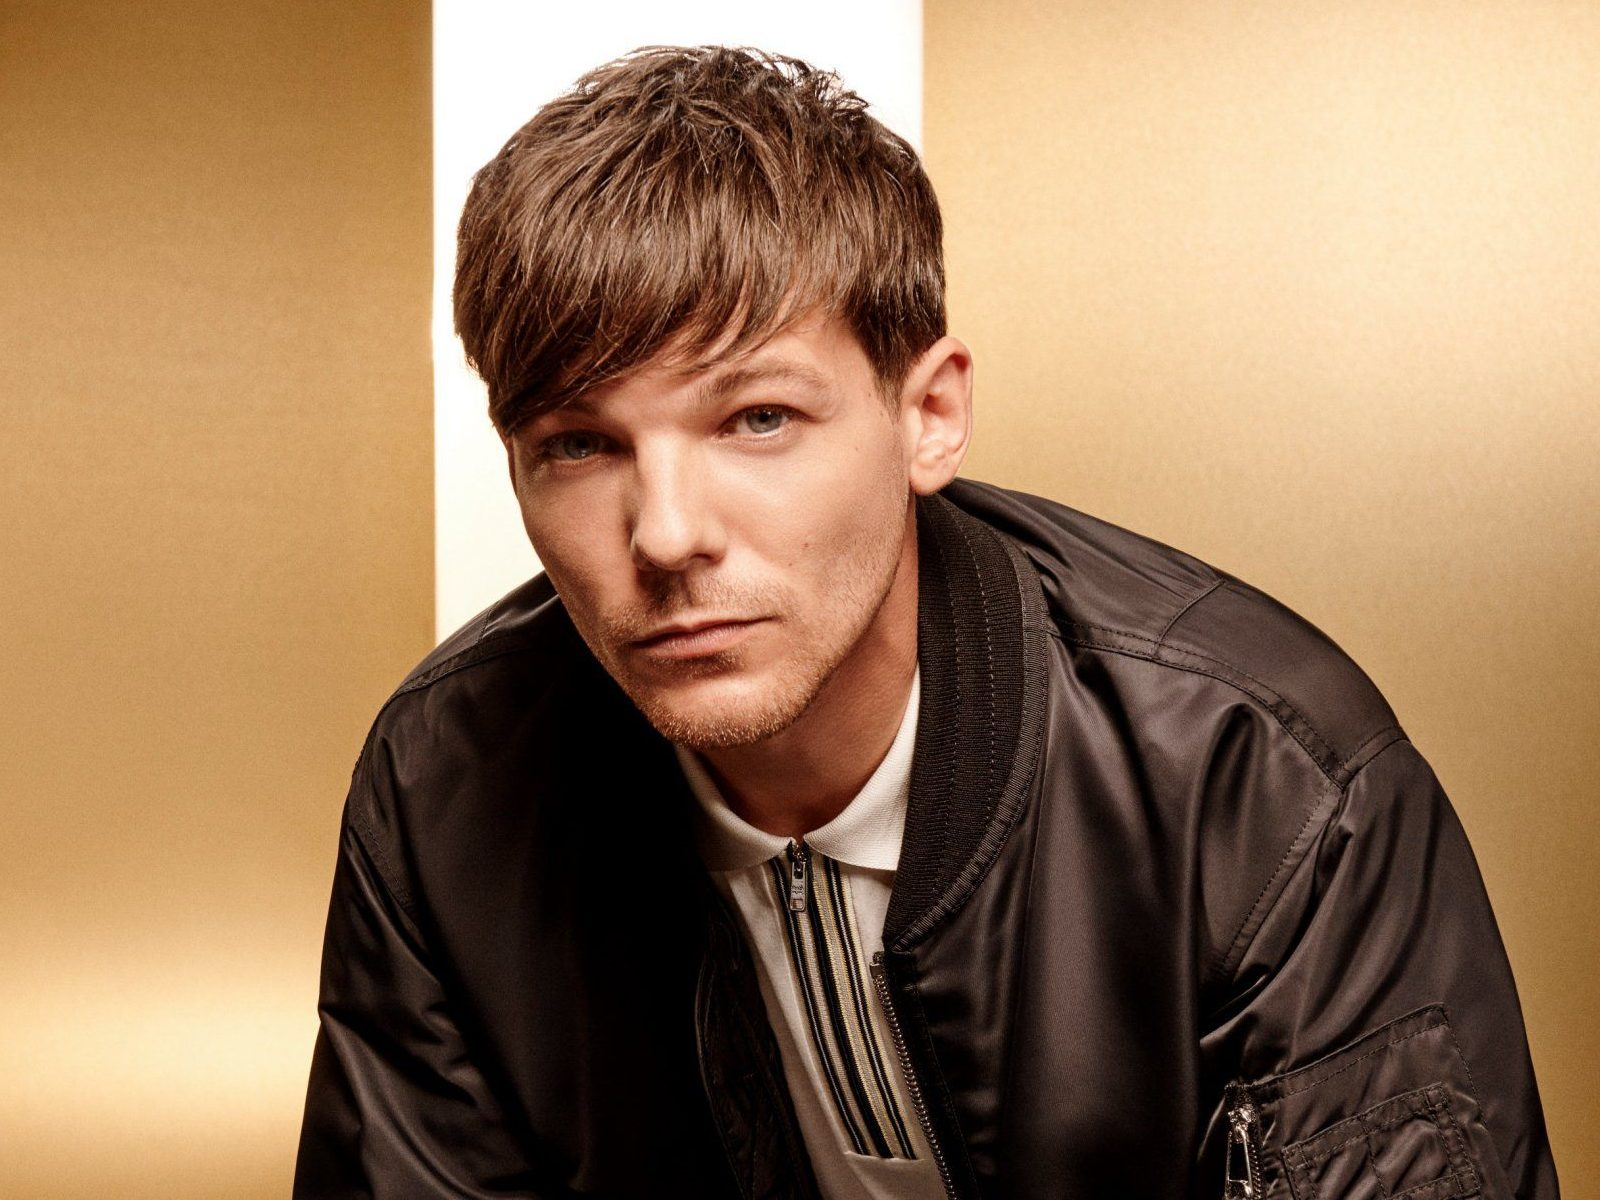 STRICT EMBARGO - NO USE BEOFRE 00:01 TUESDAY 28TH AUGUST 2018 - EDITORIAL USE ONLY - NO MERCHANDISING Mandatory Credit: Photo by Thames/Syco/Burmiston/REX/Shutterstock (9799208e) Louis Tomlinson 'The X Factor' TV show, Portraits, Series 15, London, UK - 20 Aug 2018